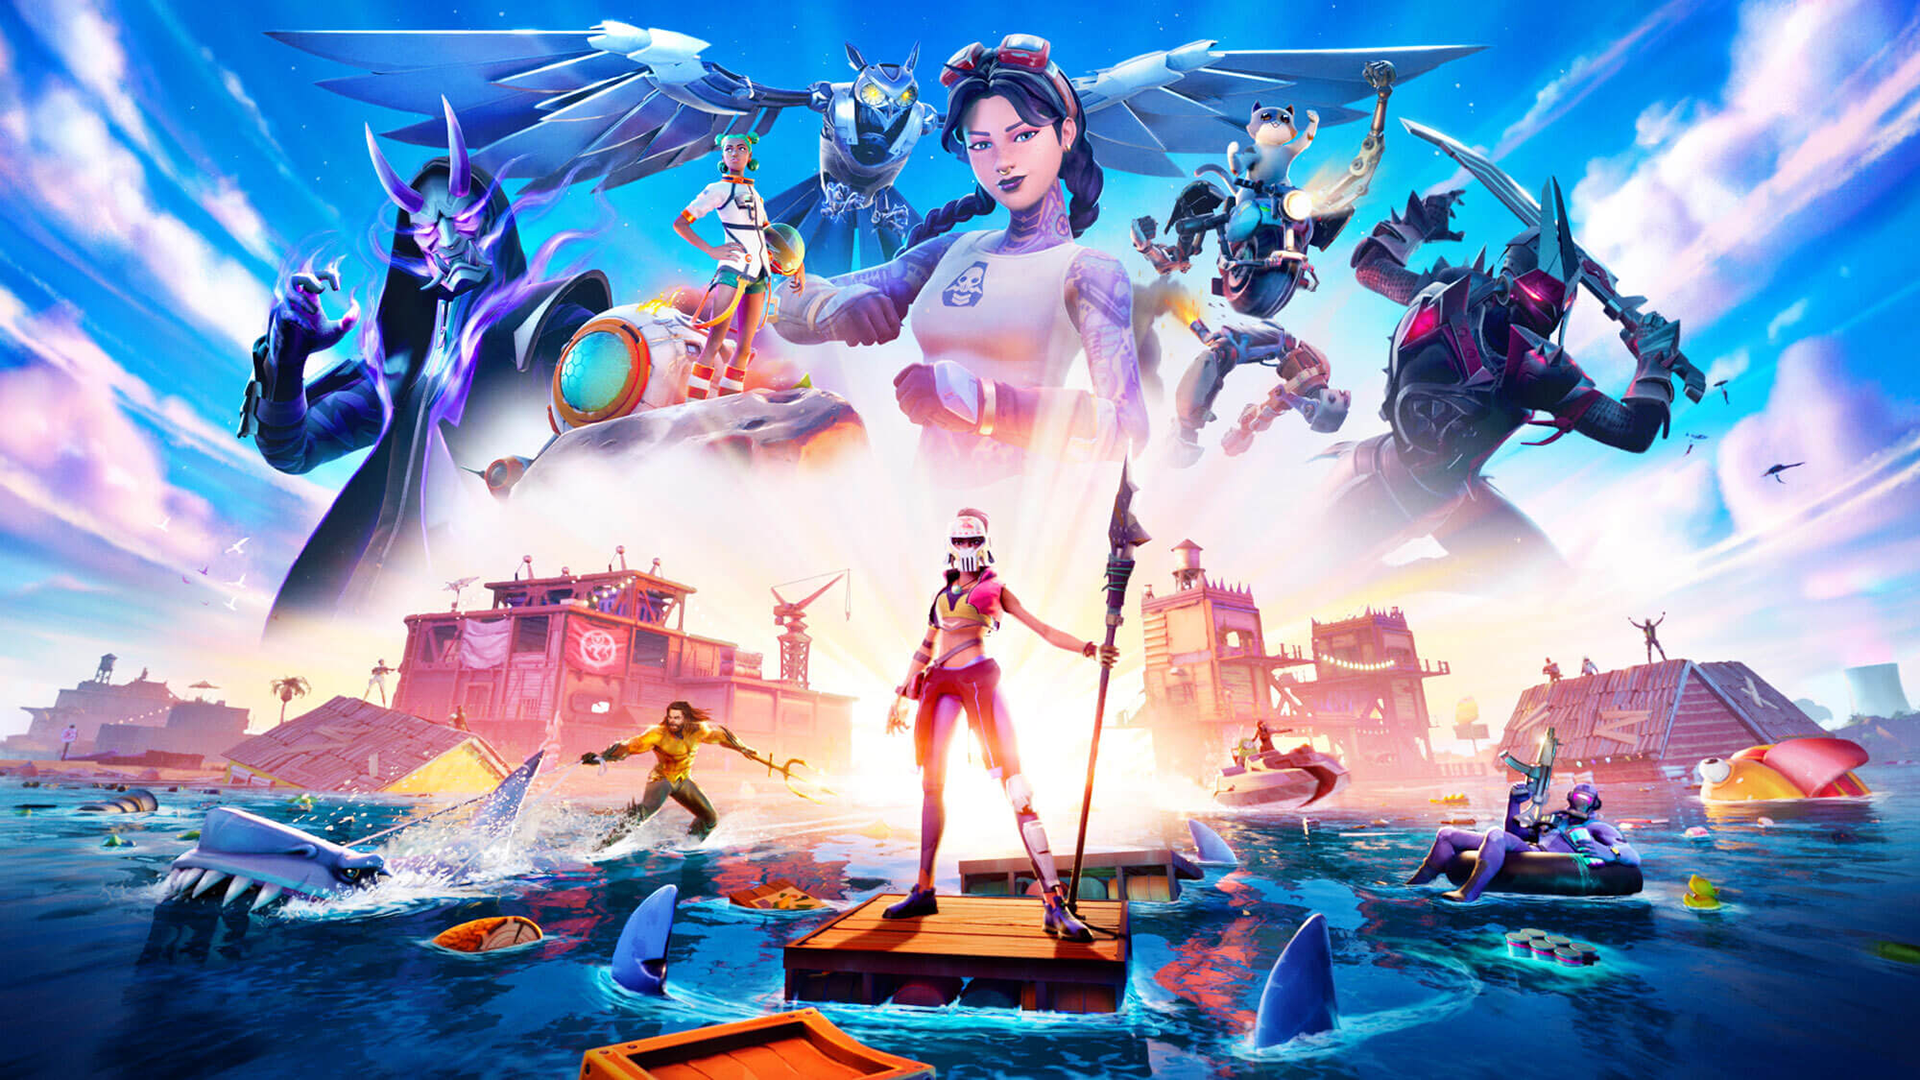 Fortnite Chapter 2 Season 3 Trailer Battle Pass Skins Patch Notes And News Den Of Geek